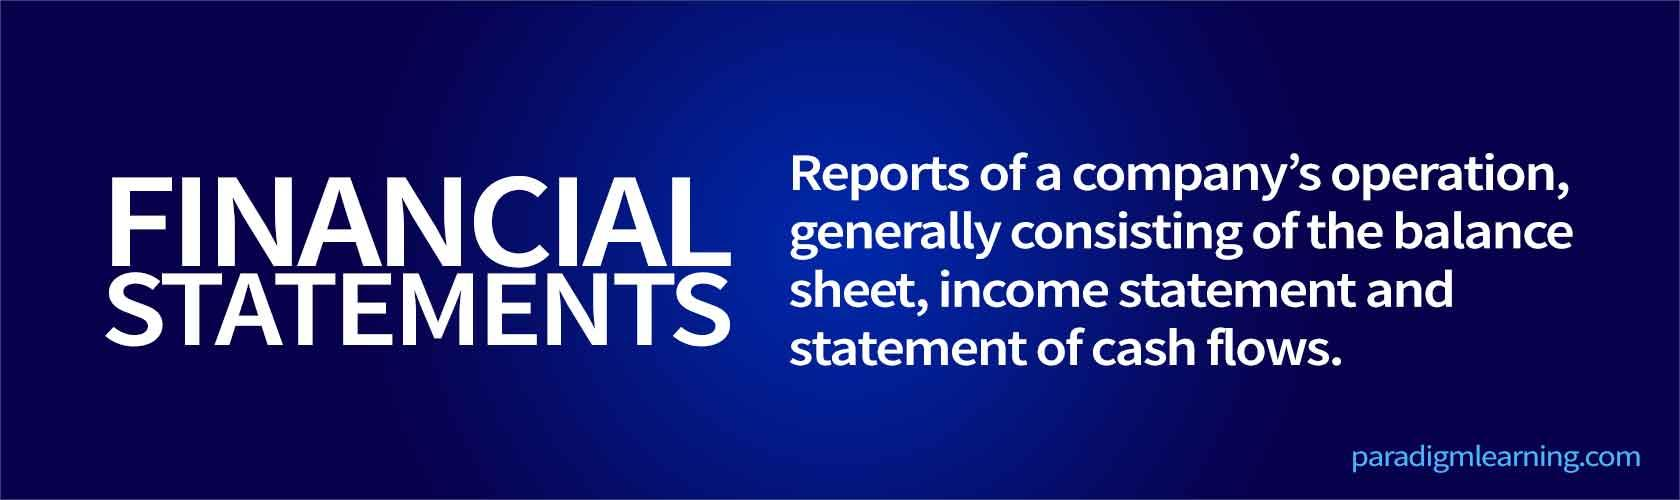 Reports of a company's operation, generally consisting of the balance sheet, income statement and statement of cash flows.